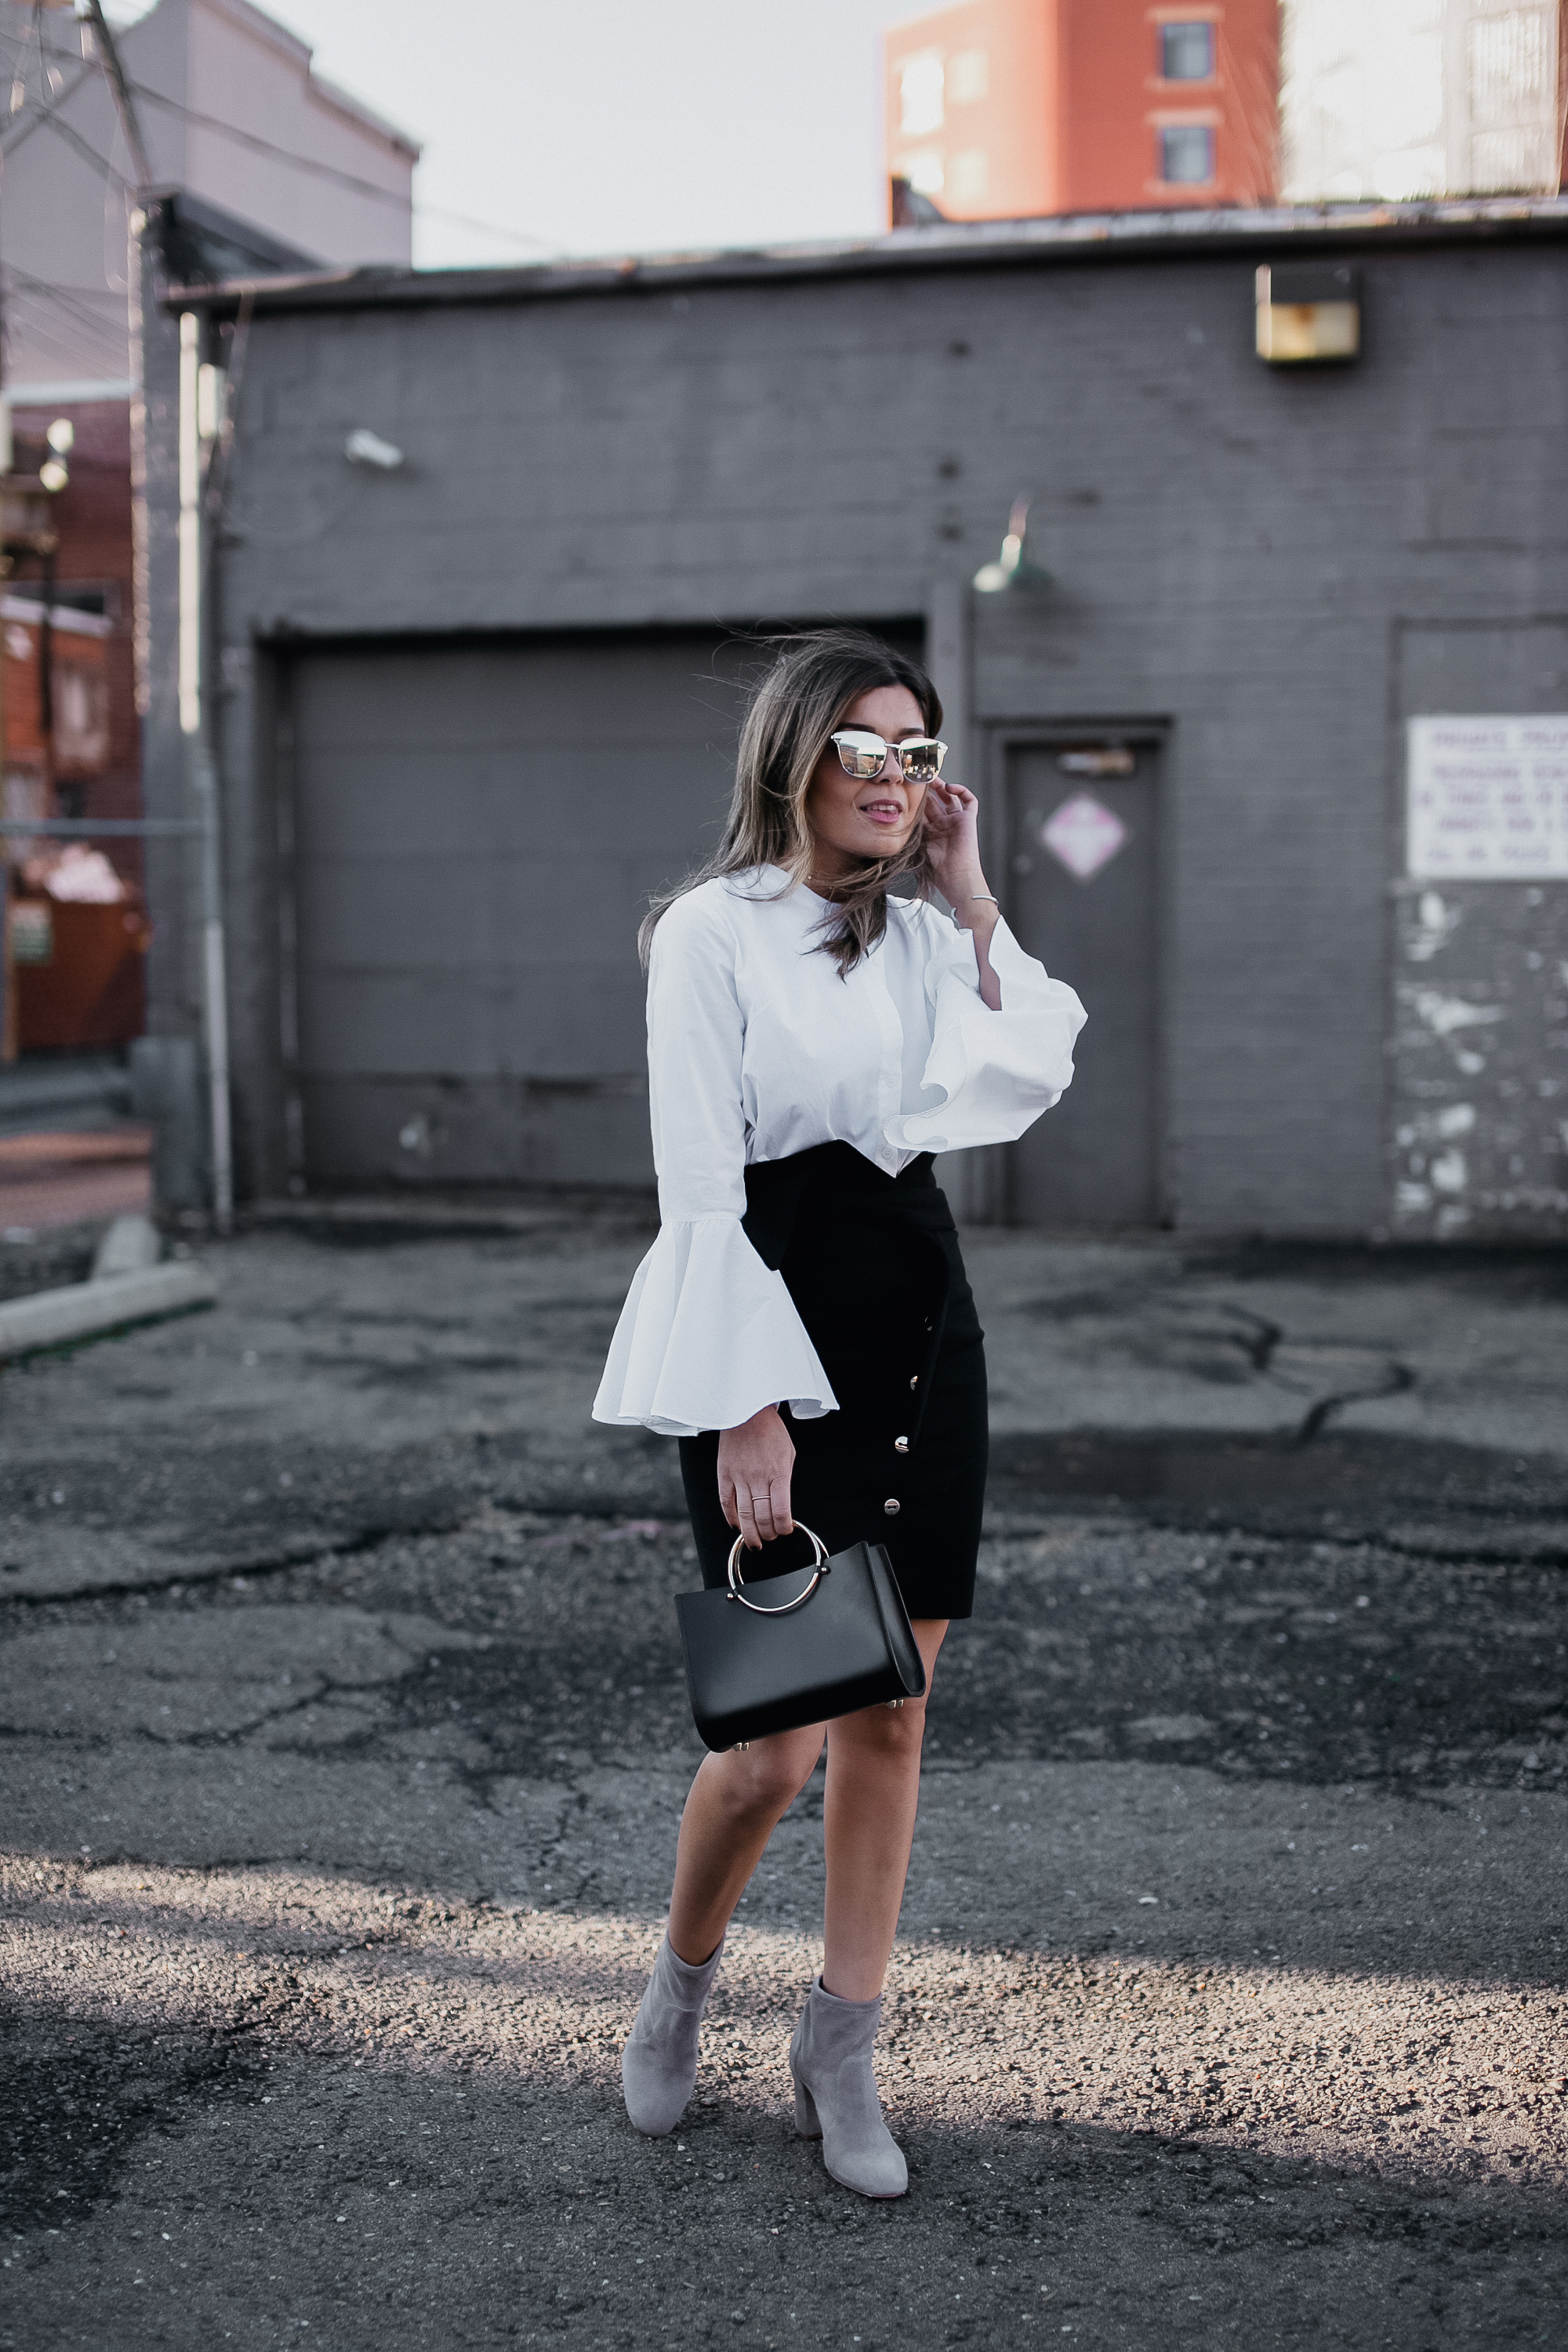 Blogger Sara Azani of Style MBA, a petite Brunette woman with blonde highlights wears the Maddy Assymetrical Button Front Pencil High Waisted Skirt by IRO in black, paired with a white Sotrets dress that is worn as a top, and accesorised with a black Future Glory bag, gold Le Specs sunglasses, and grey suede Schutz boots.